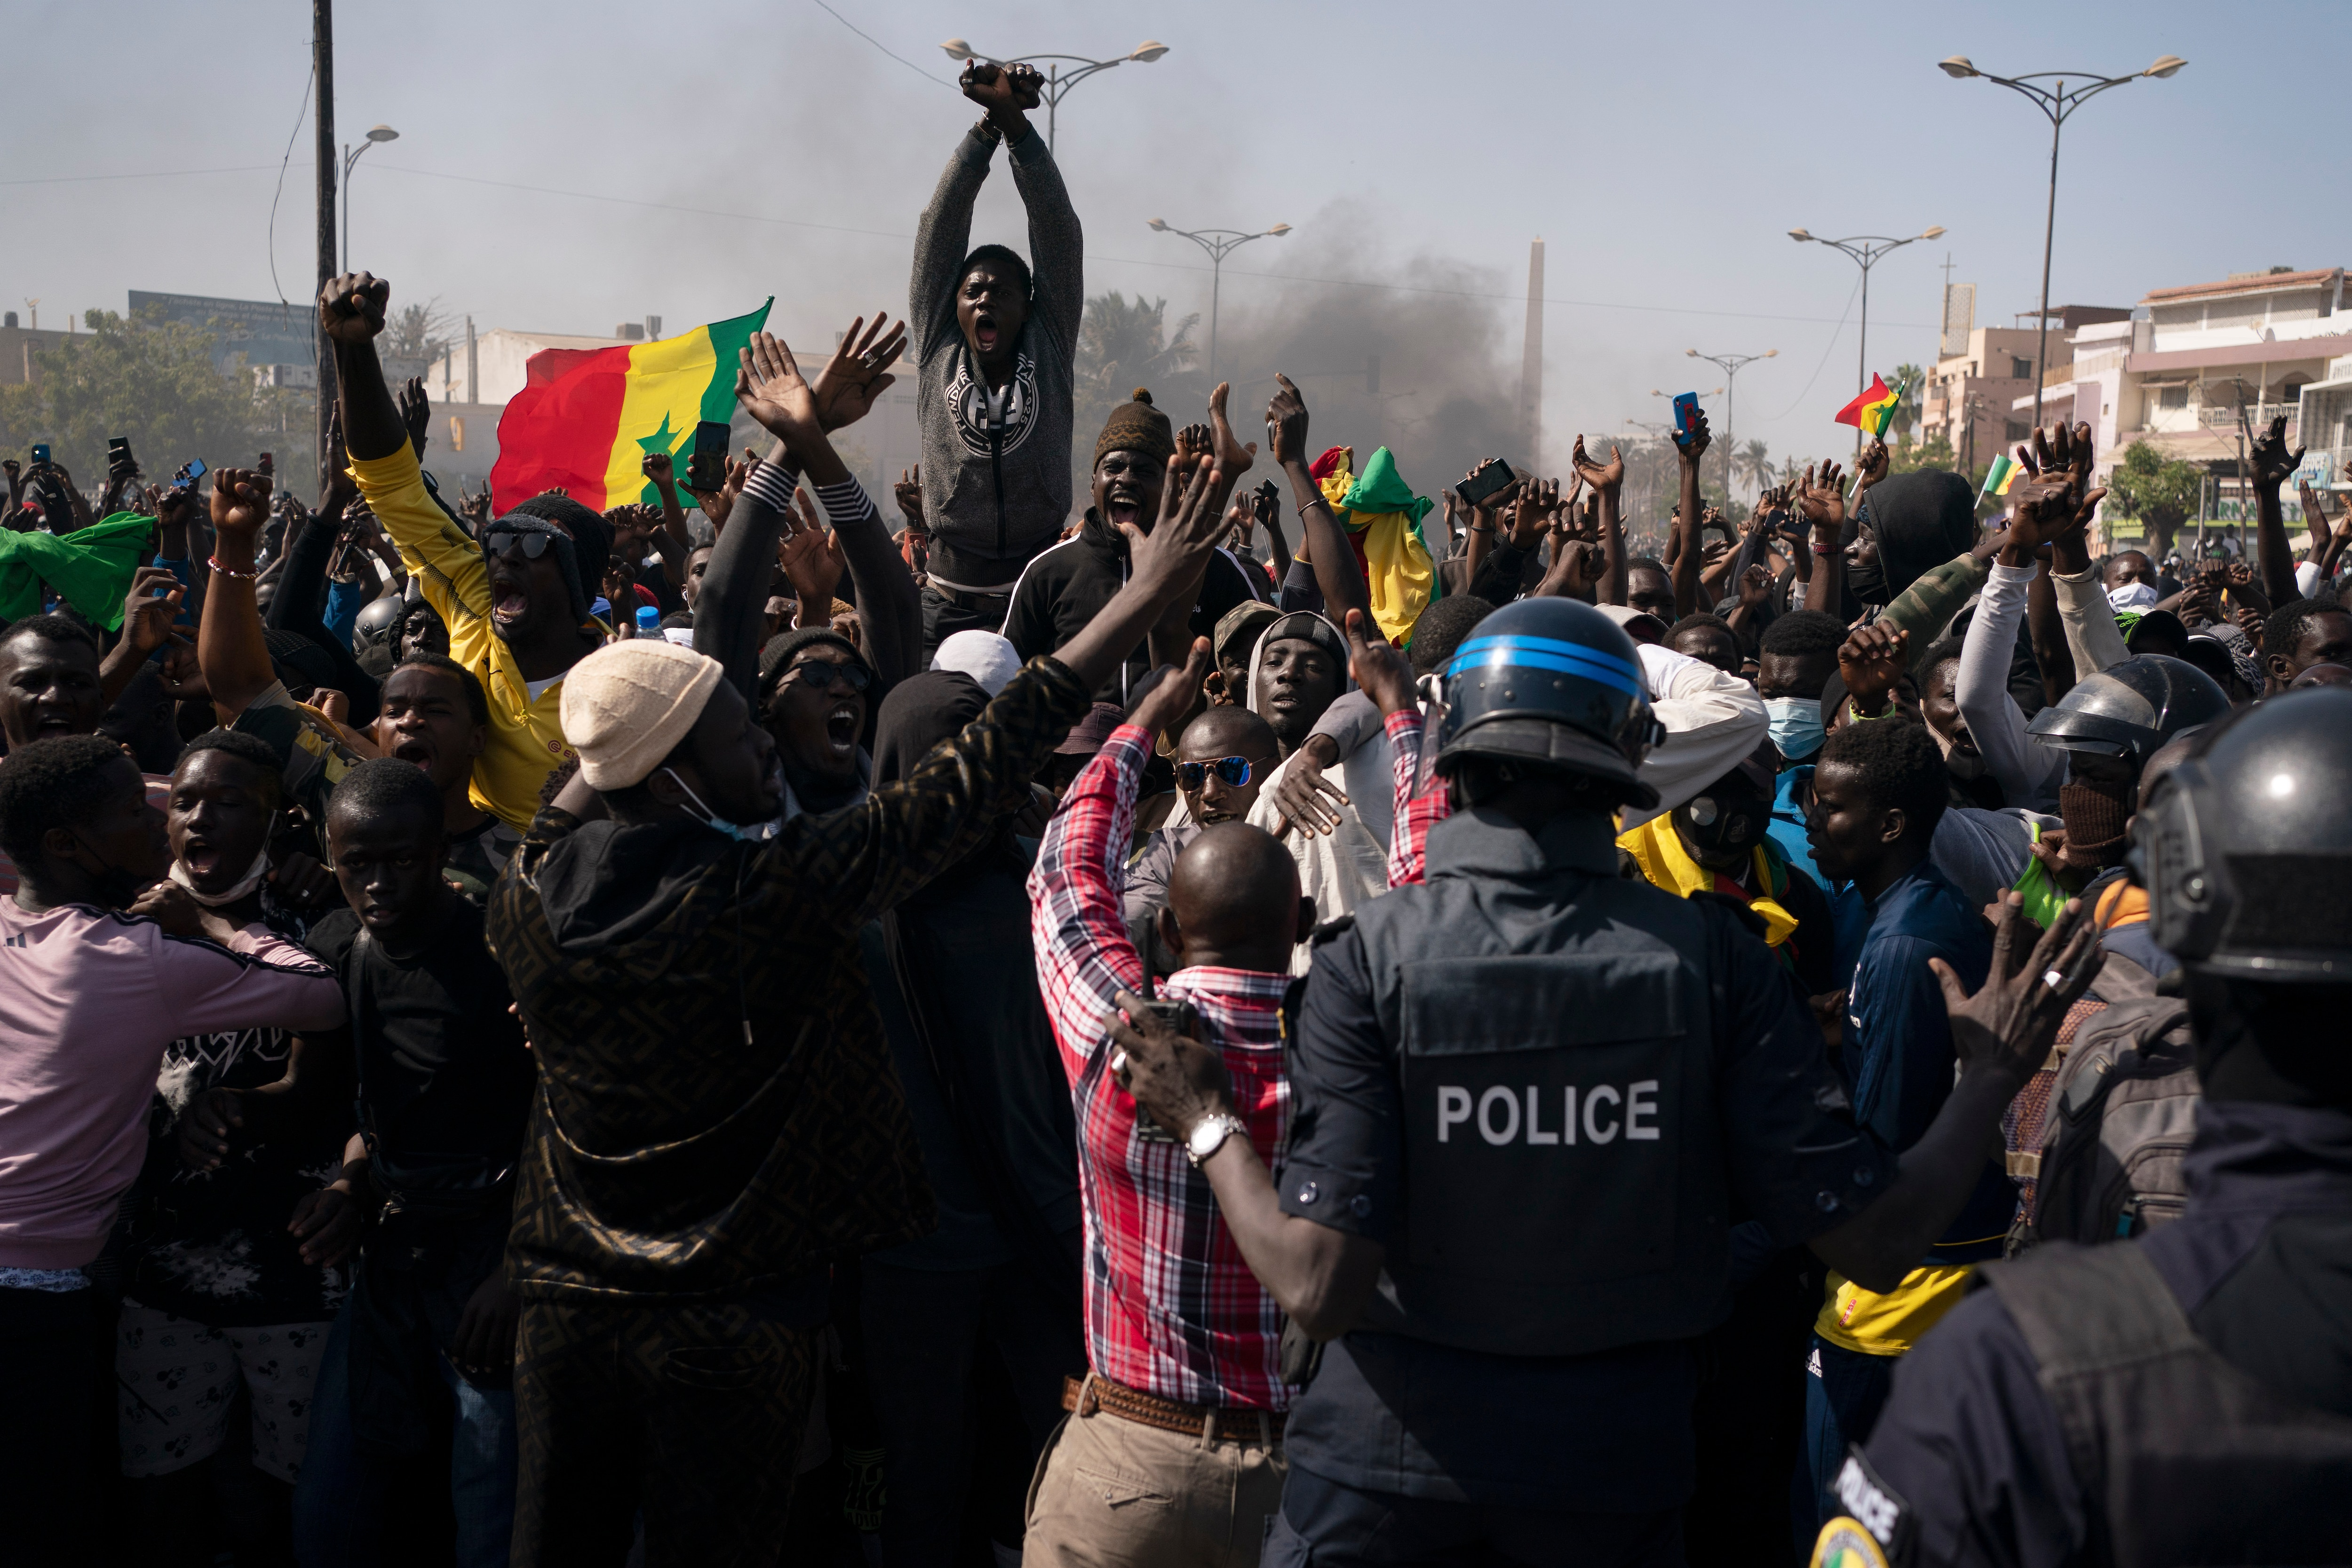 Demonstrators shout slogans in front of police during a protest against the arrest of opposition leader Ousmane Sonko, Senegal, 8 March, 2021.